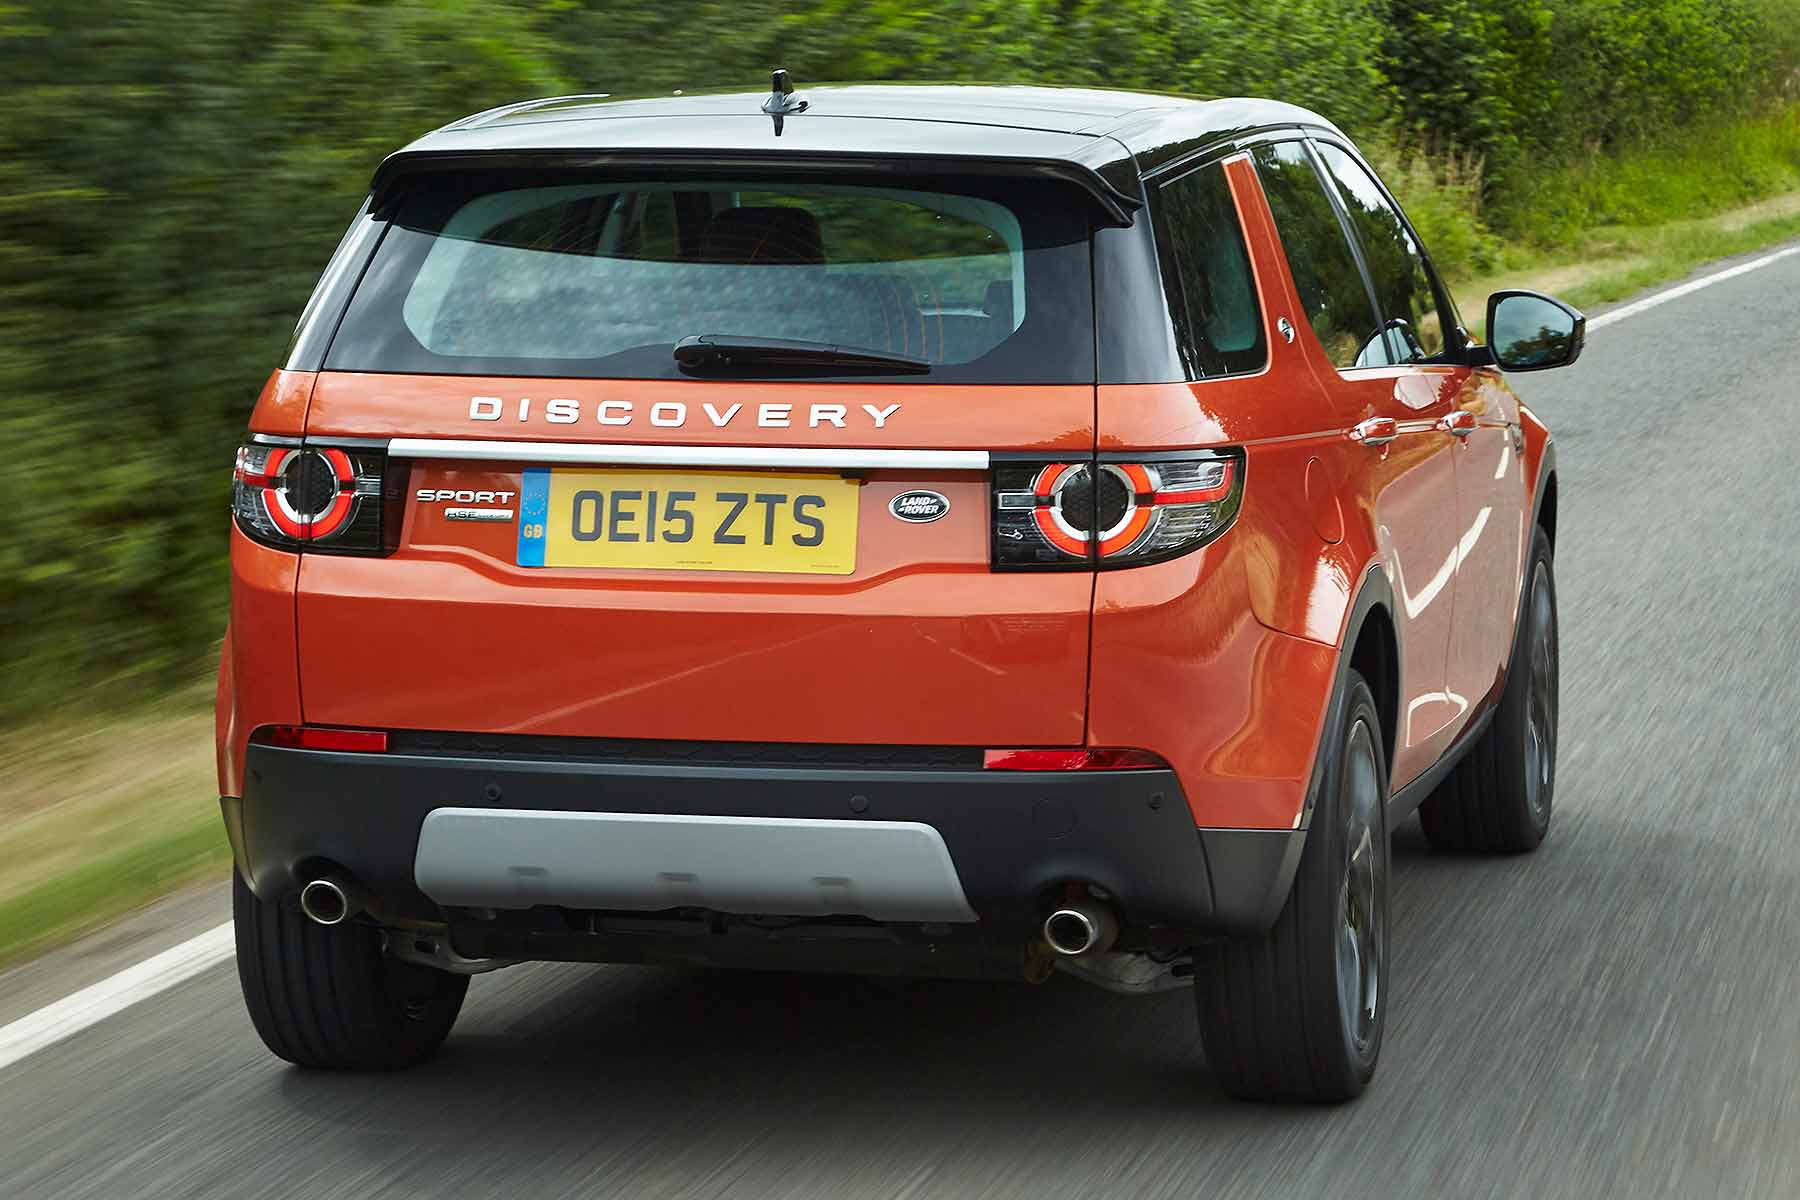 land rover discovery sport td4 180 review 2015 first drive motoring research. Black Bedroom Furniture Sets. Home Design Ideas